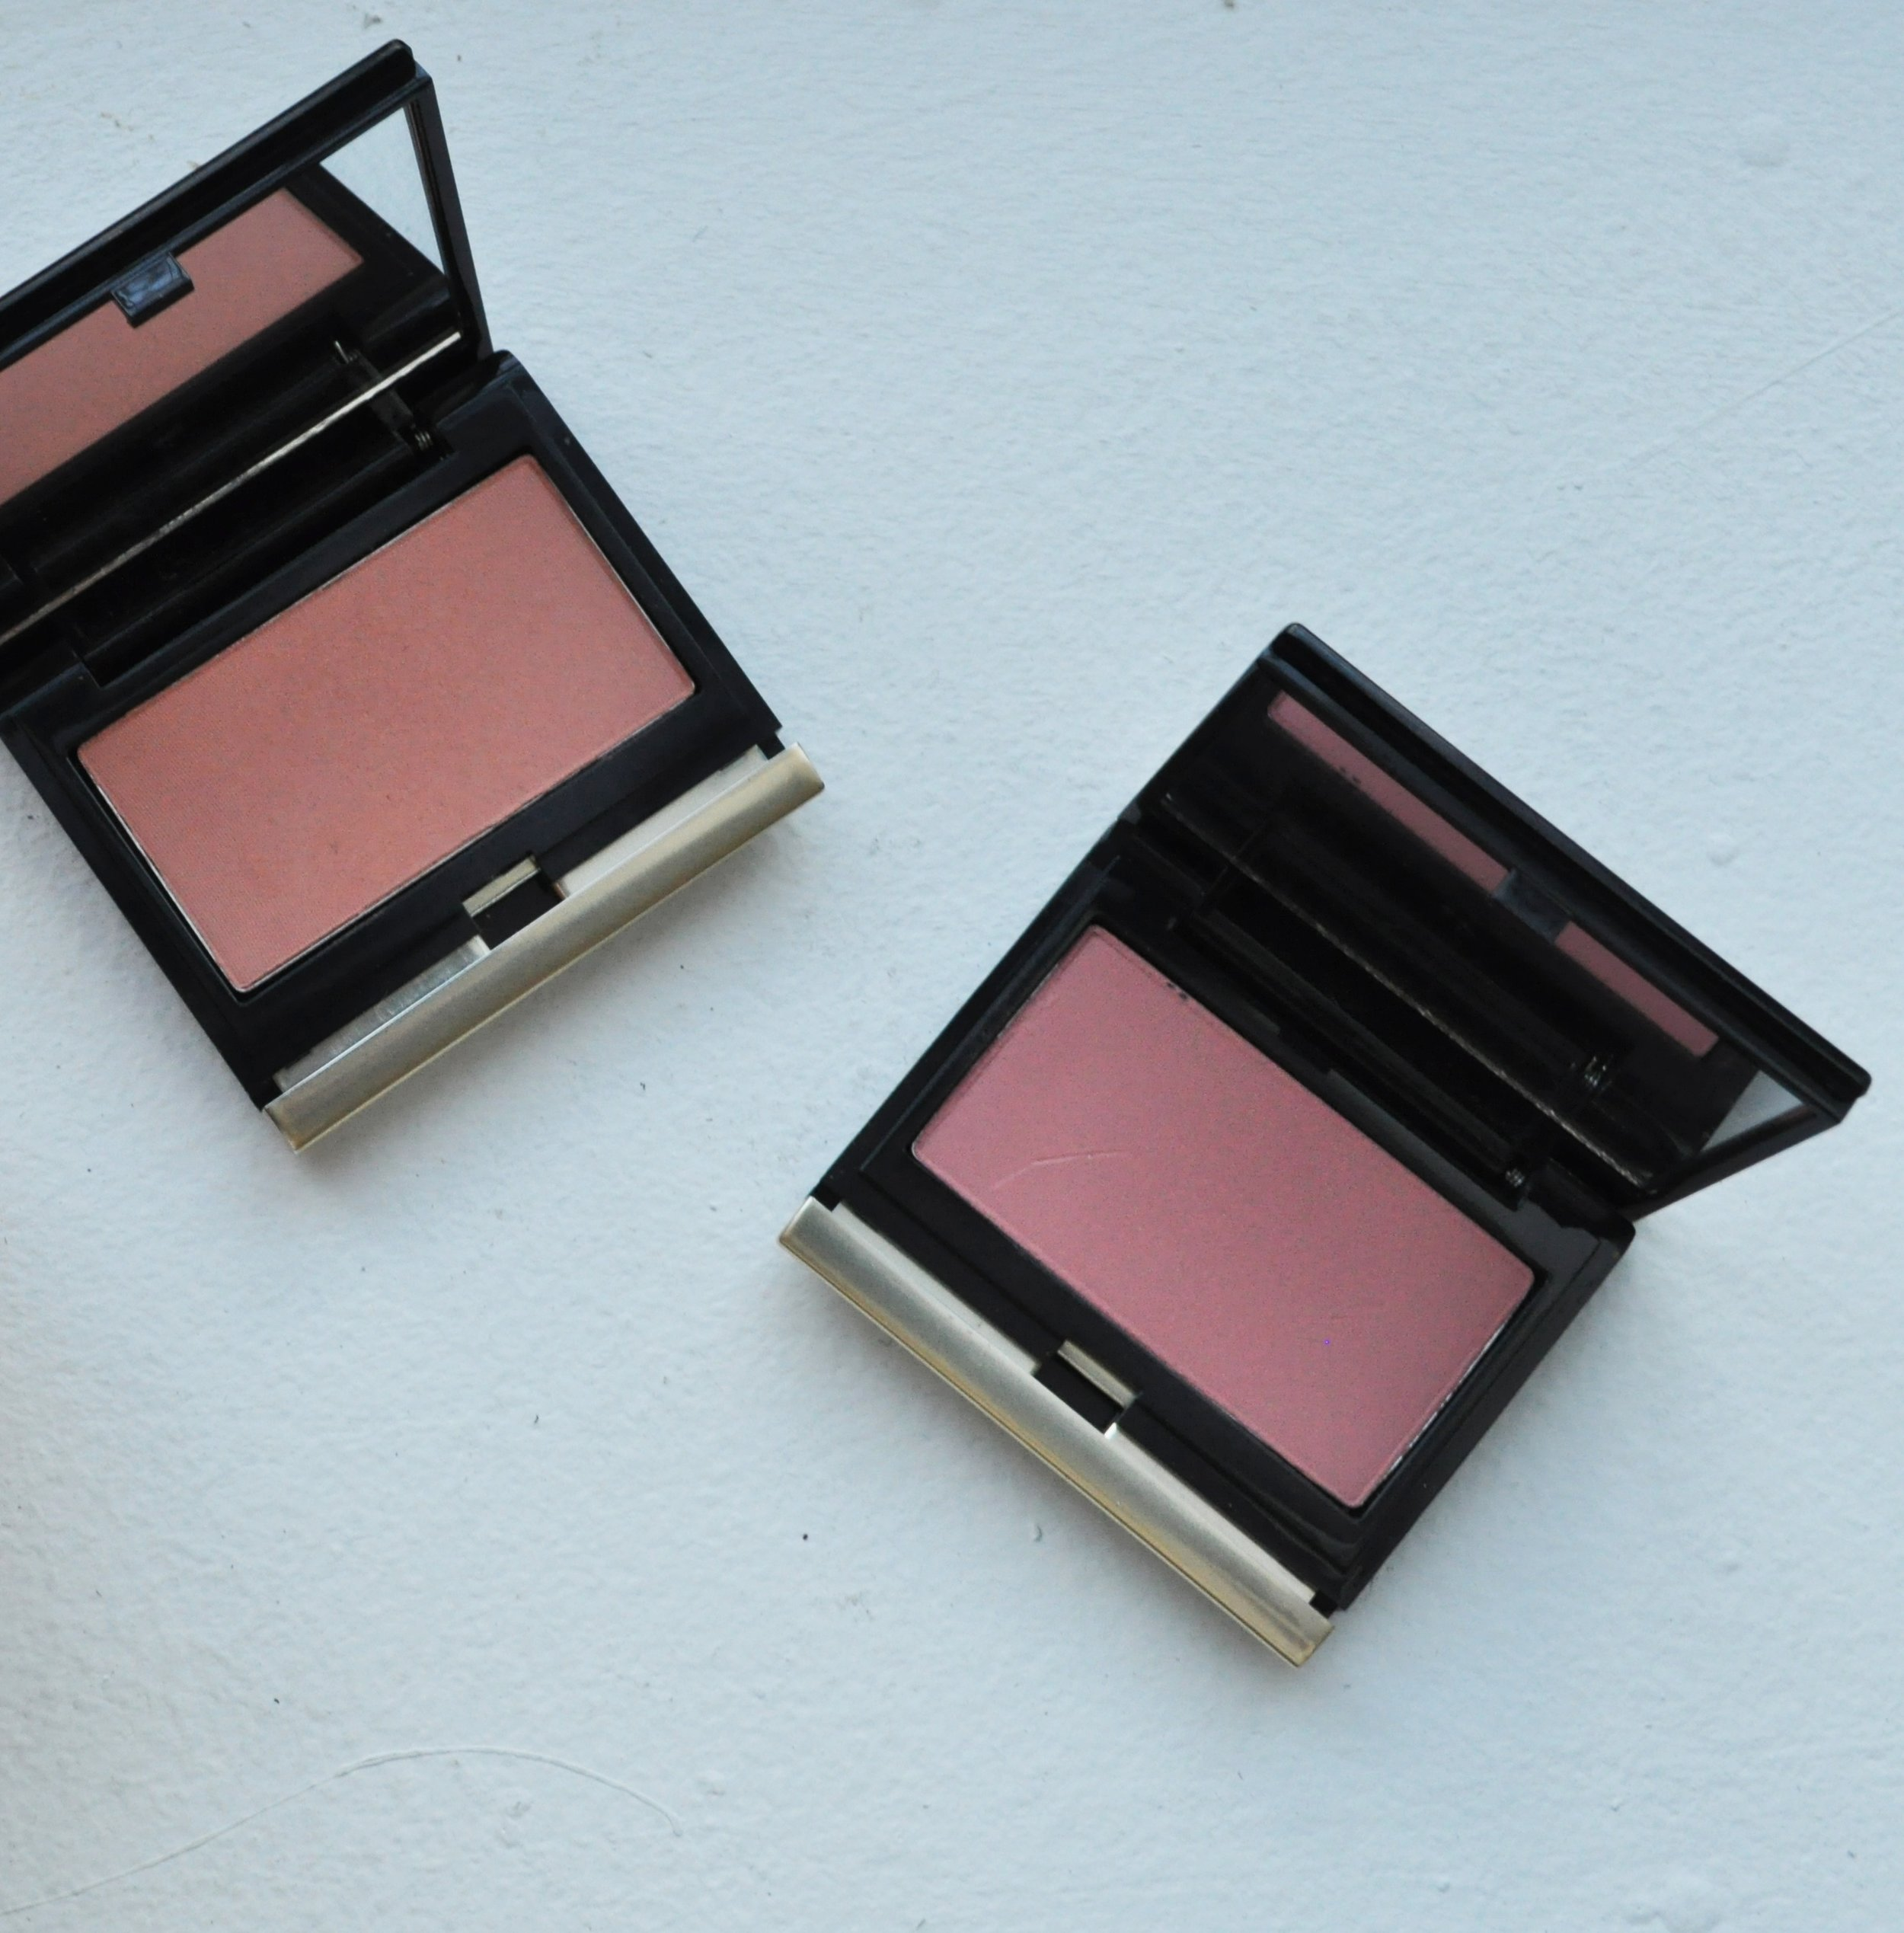 Kevyn Aucoin The Pure Powder Glow Blush in Dolline and Helena